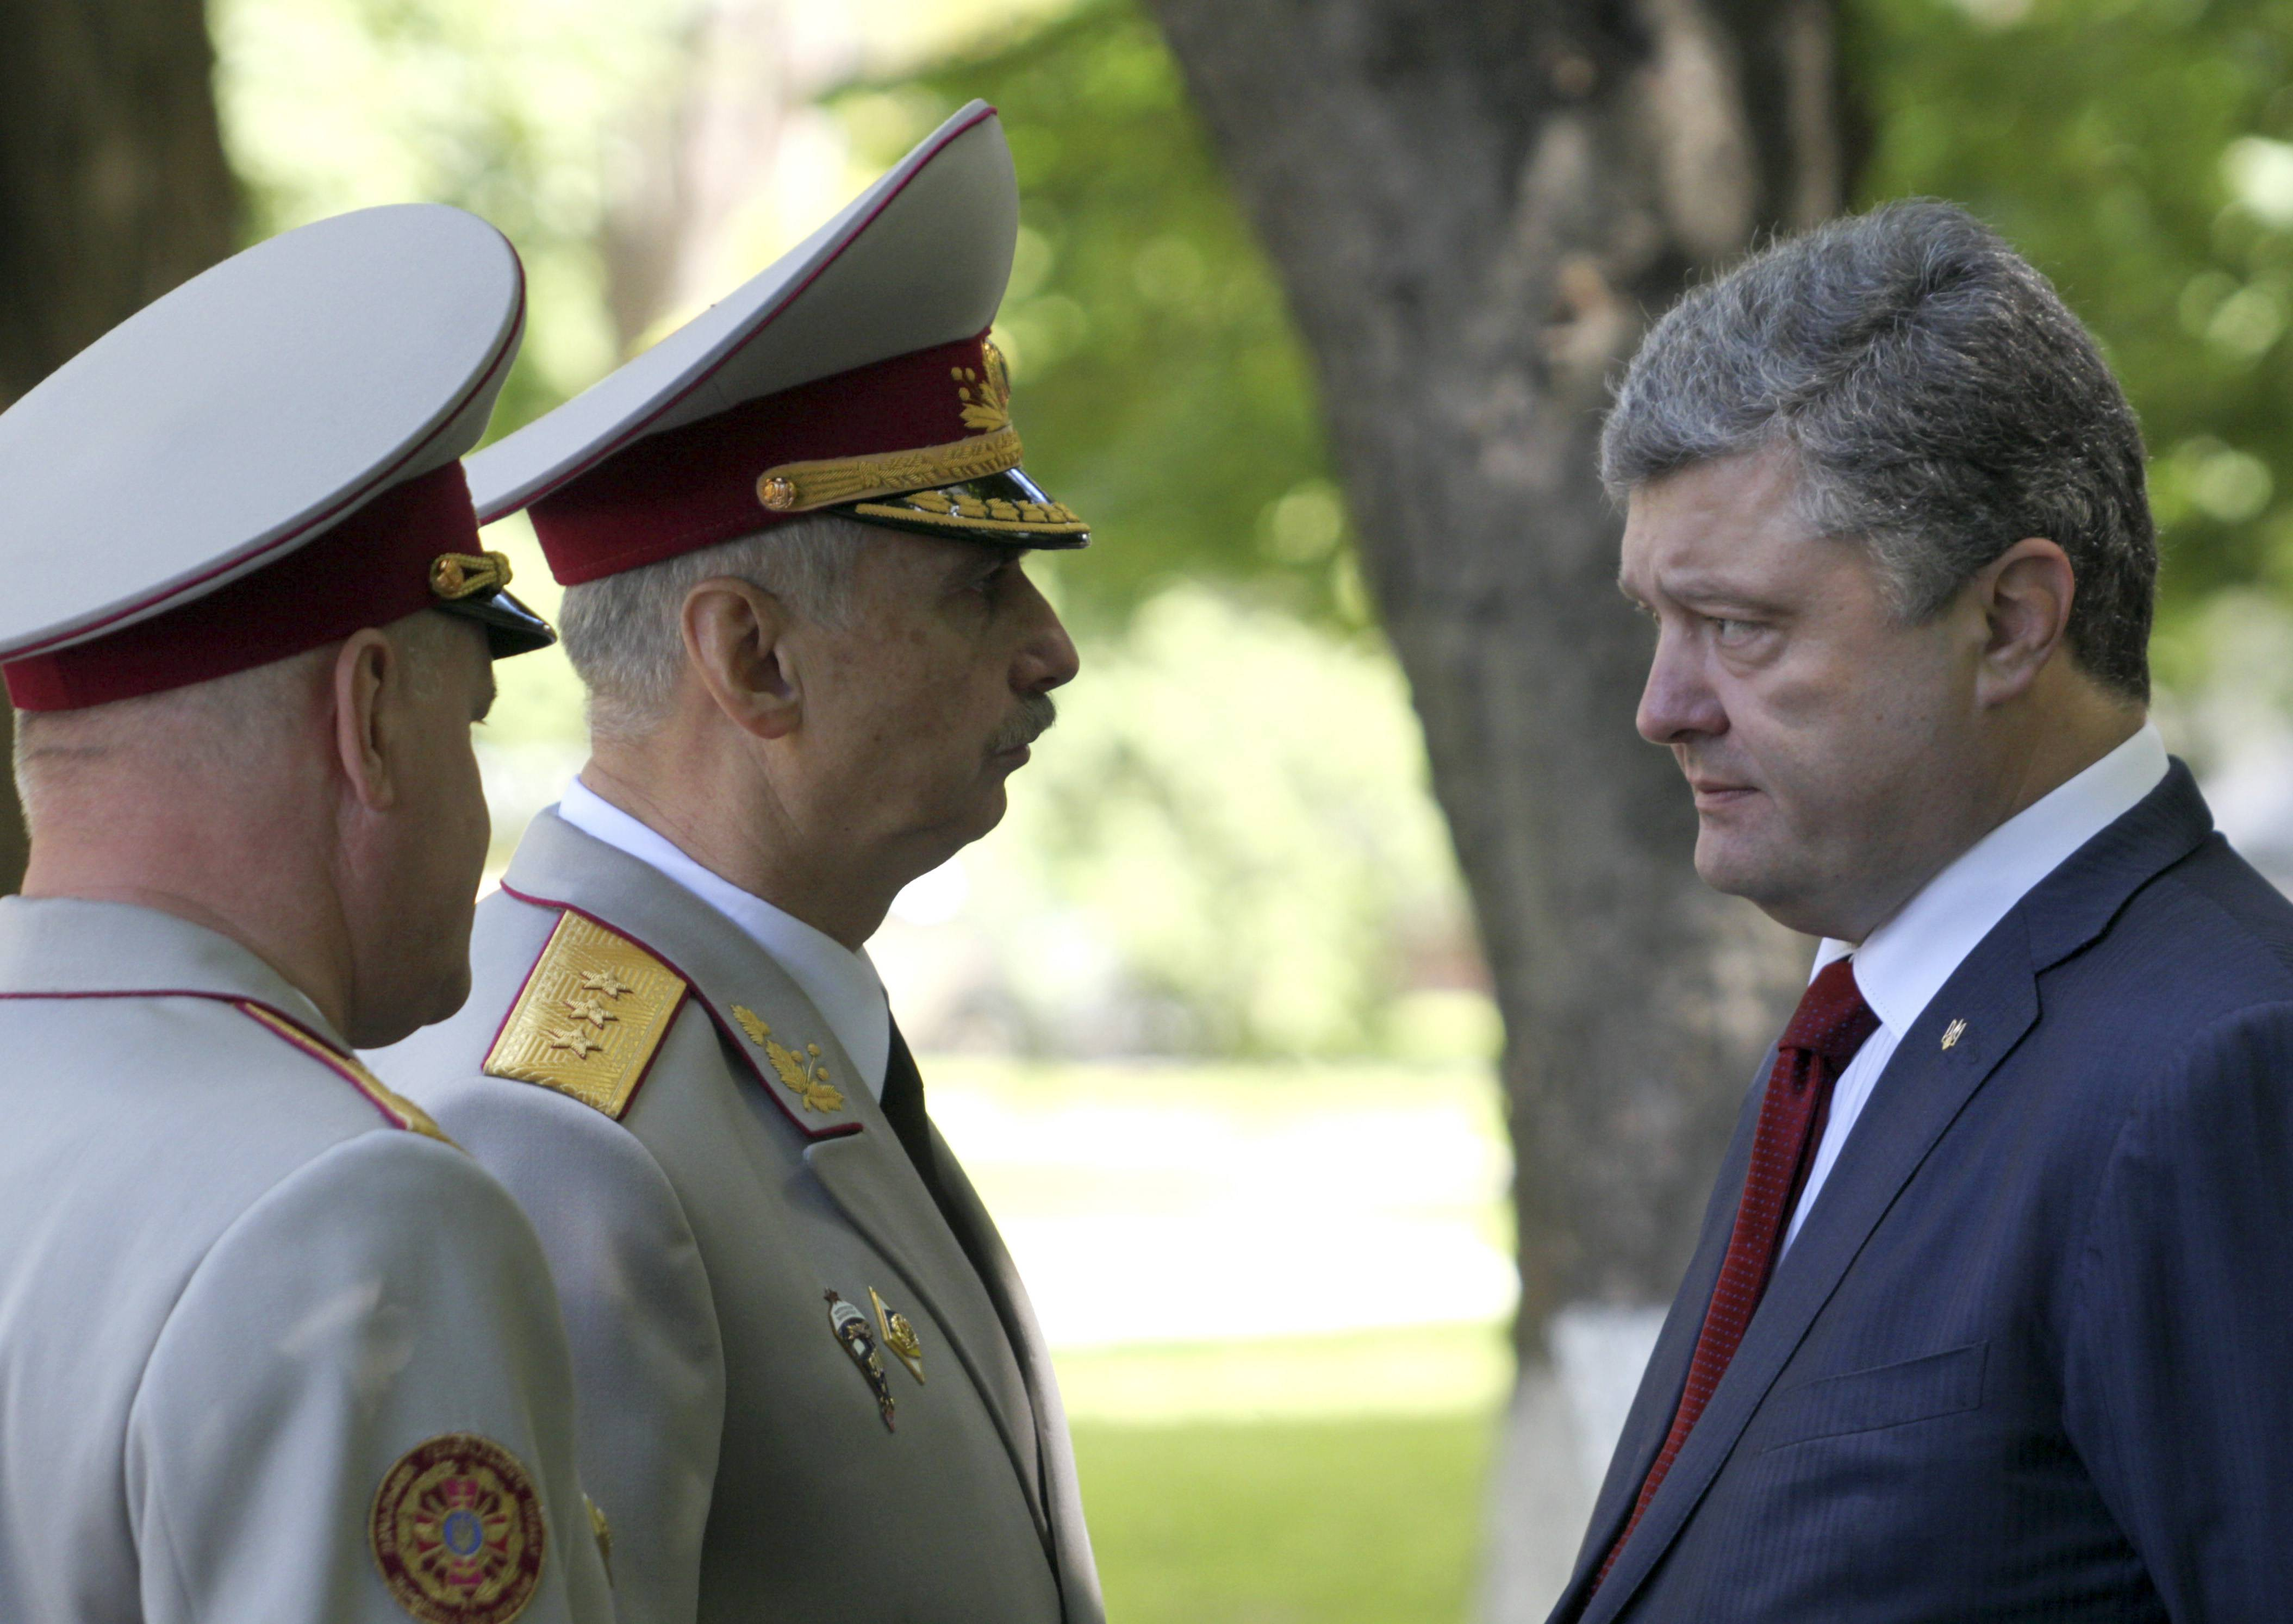 Ukrainian President Petro Poroshenko, right, meets Wednesday with acting Ukrainian Defense Minister Mykhailo Koval, center, in Kiev, Ukraine. Ukraine's president said Wednesday that government forces will unilaterally cease-fire to allow pro-Russian separatists in the east of the country a chance to lay down weapons or leave the country, a potential major development to bring peace to the country.